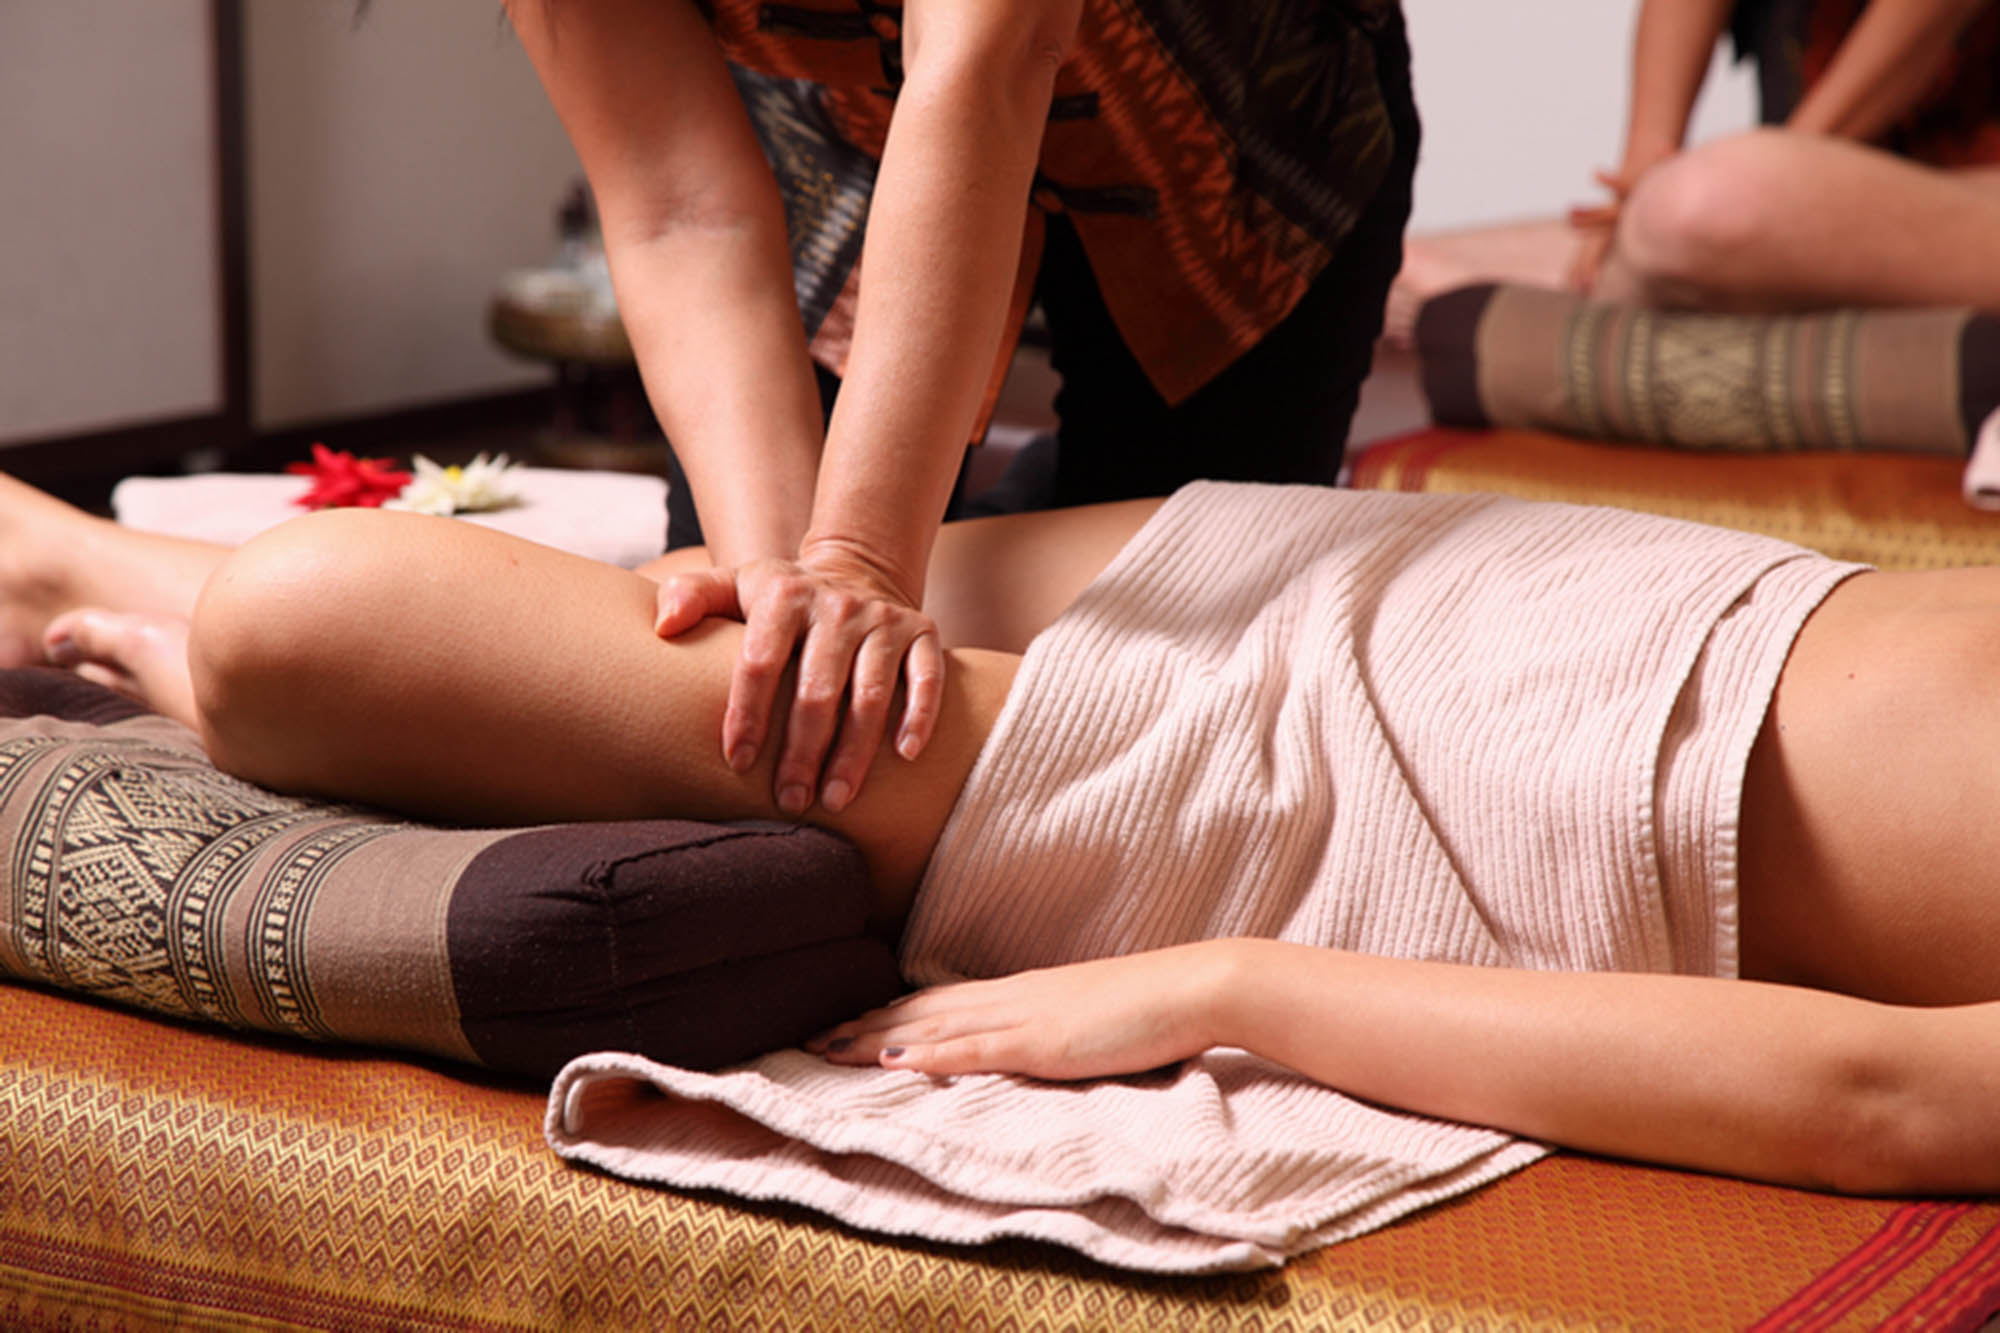 Traditionelle Thai-Massage am Bein